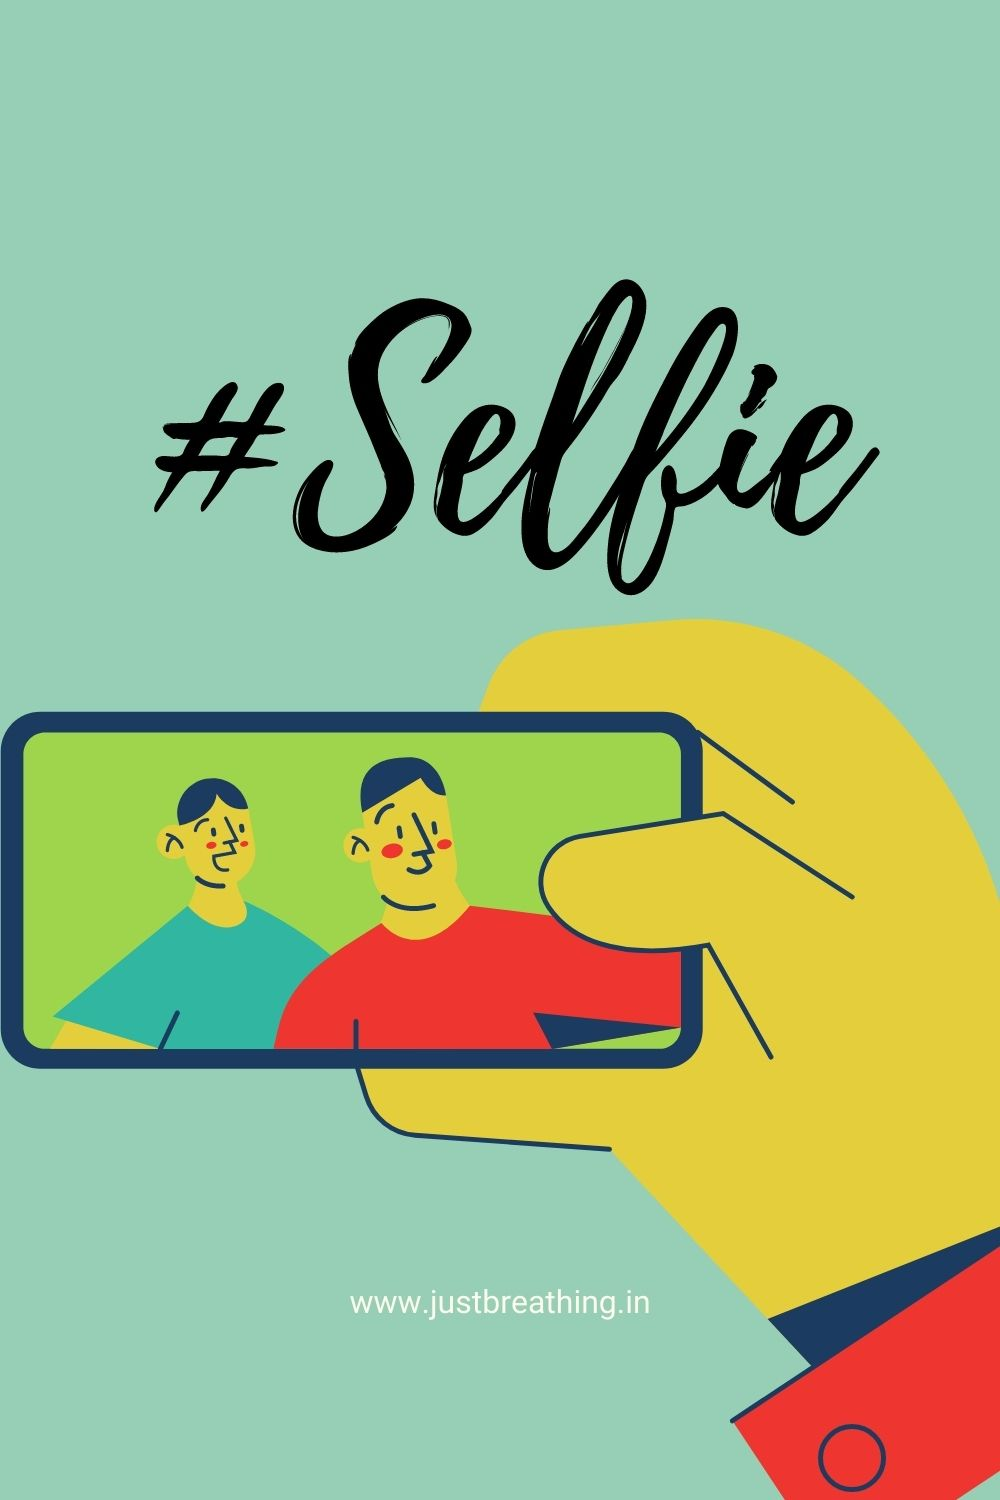 Hashtags of Selfie for Instagram Best selfie hashtags to get more Like